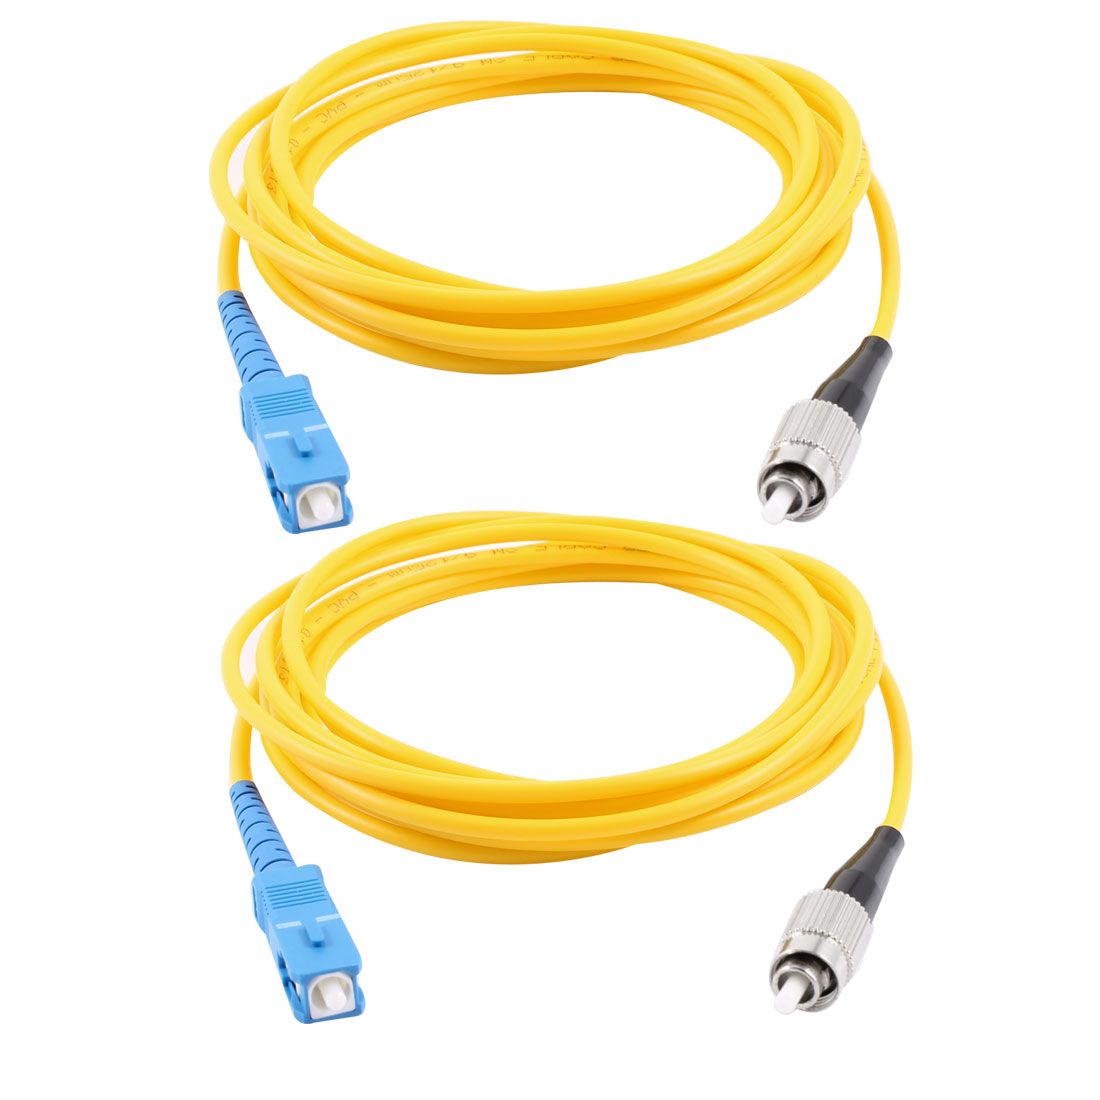 2 Pcs Yellow FC to SC Single Mode Fiber Optic Patch Cable Jumper  3 Meters